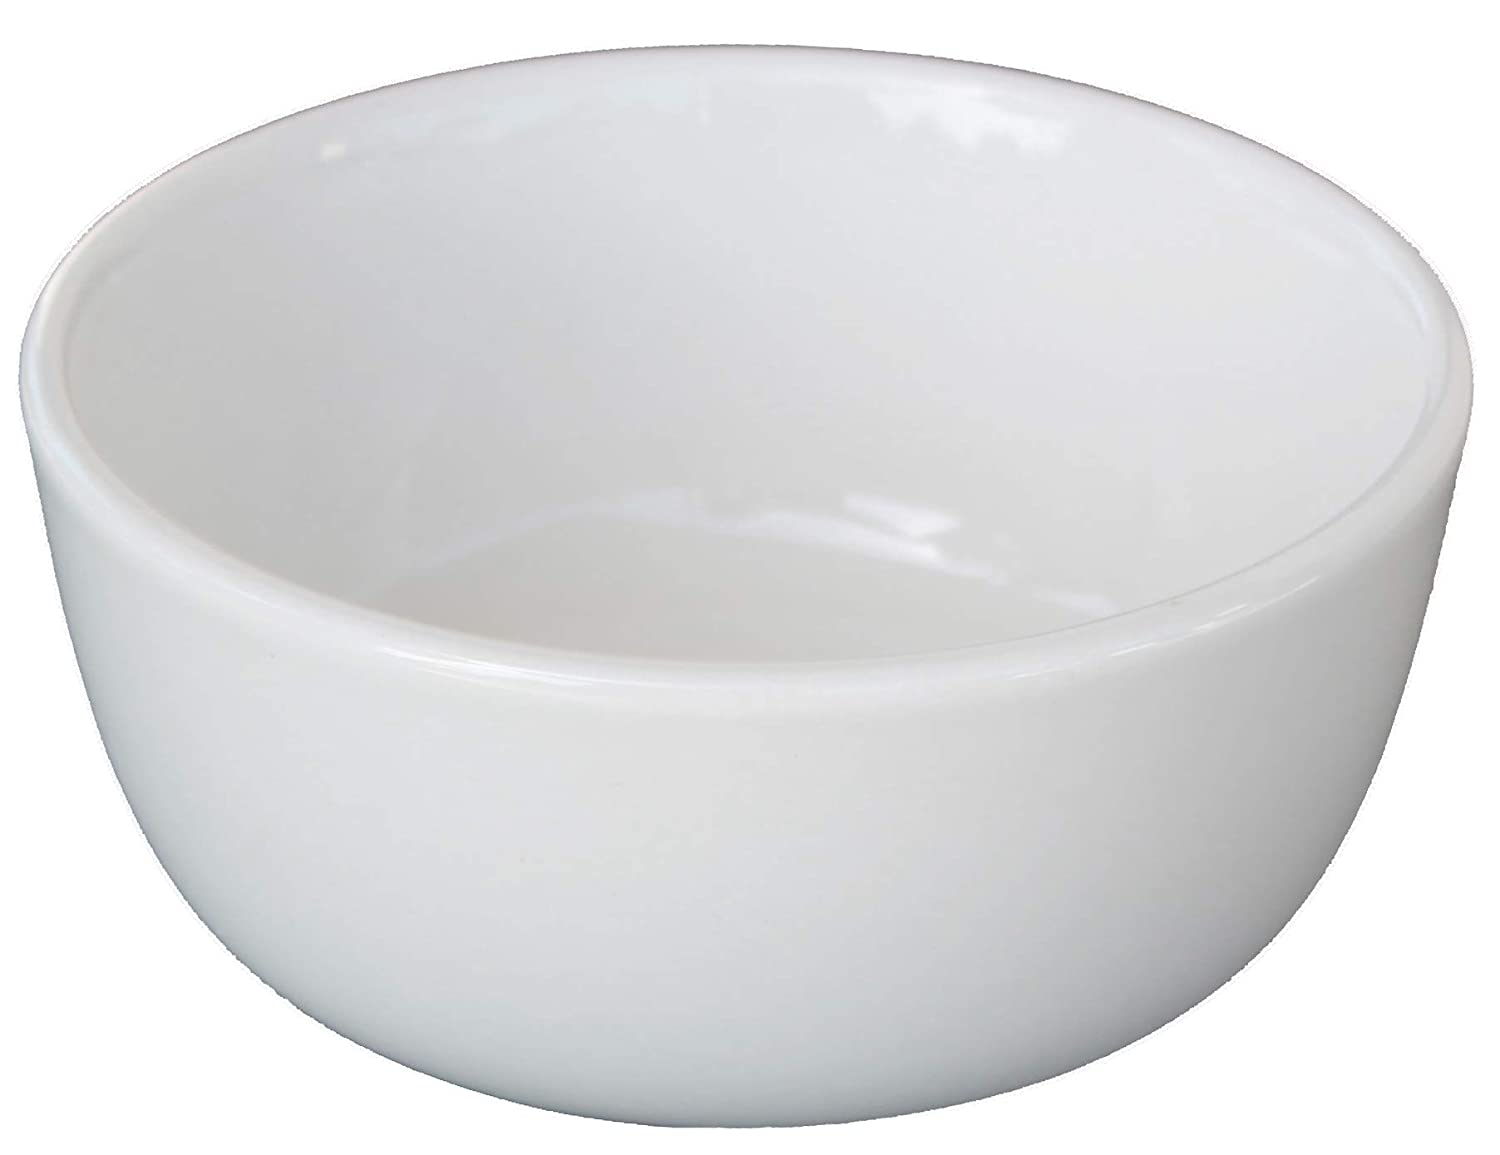 Cameo China White Ivory Ceramic Nappy Rice Bowls and Pan Scraper, 4.5 Inch, 10 Ounce, 6-Pack MBW NW Brands